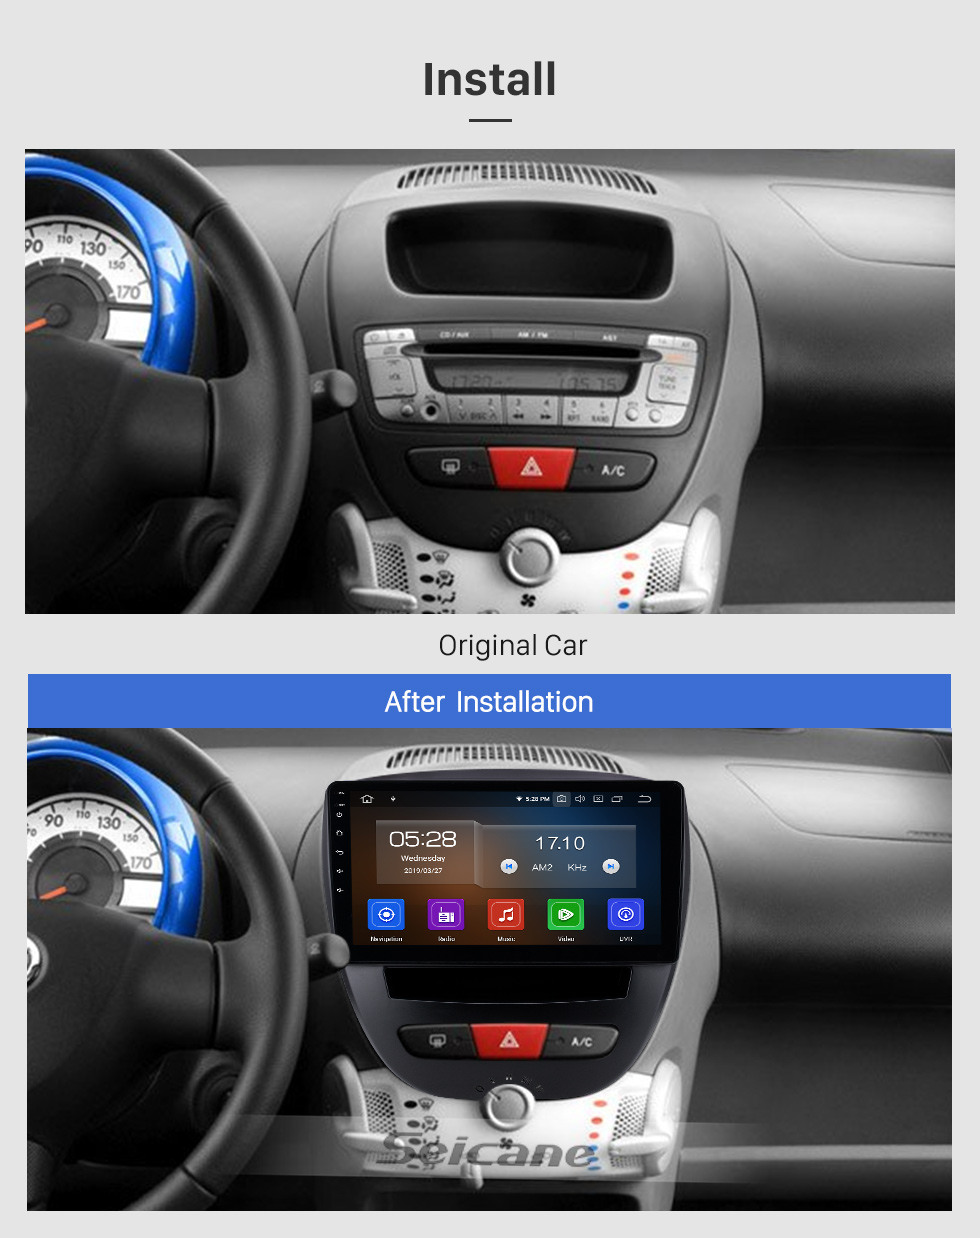 Seicane 10.1 inch Android 9.0 GPS Navigation Radio for 2005-2014 Peugeot 107 Bluetooth Wifi HD Touchscreen Carplay support DAB+ OBD2 Mirror Link